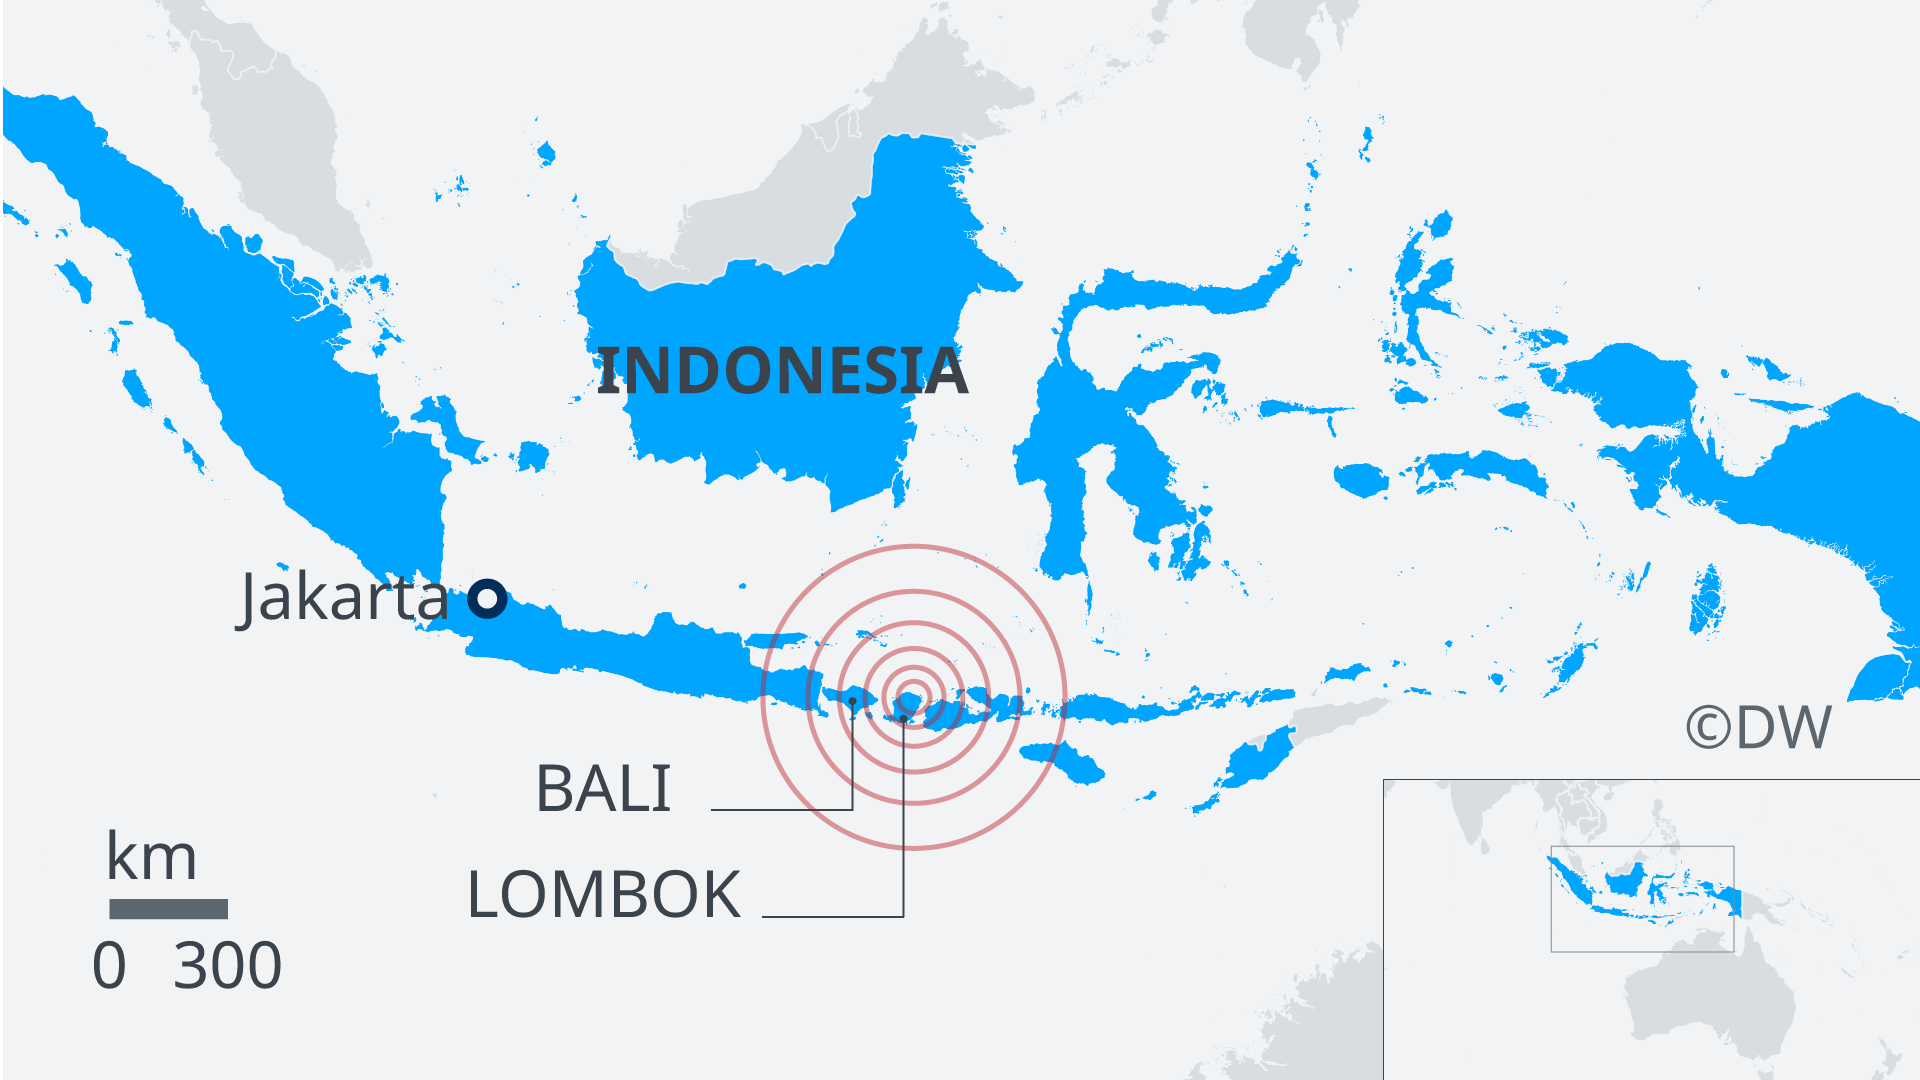 Map of Lombok quake area